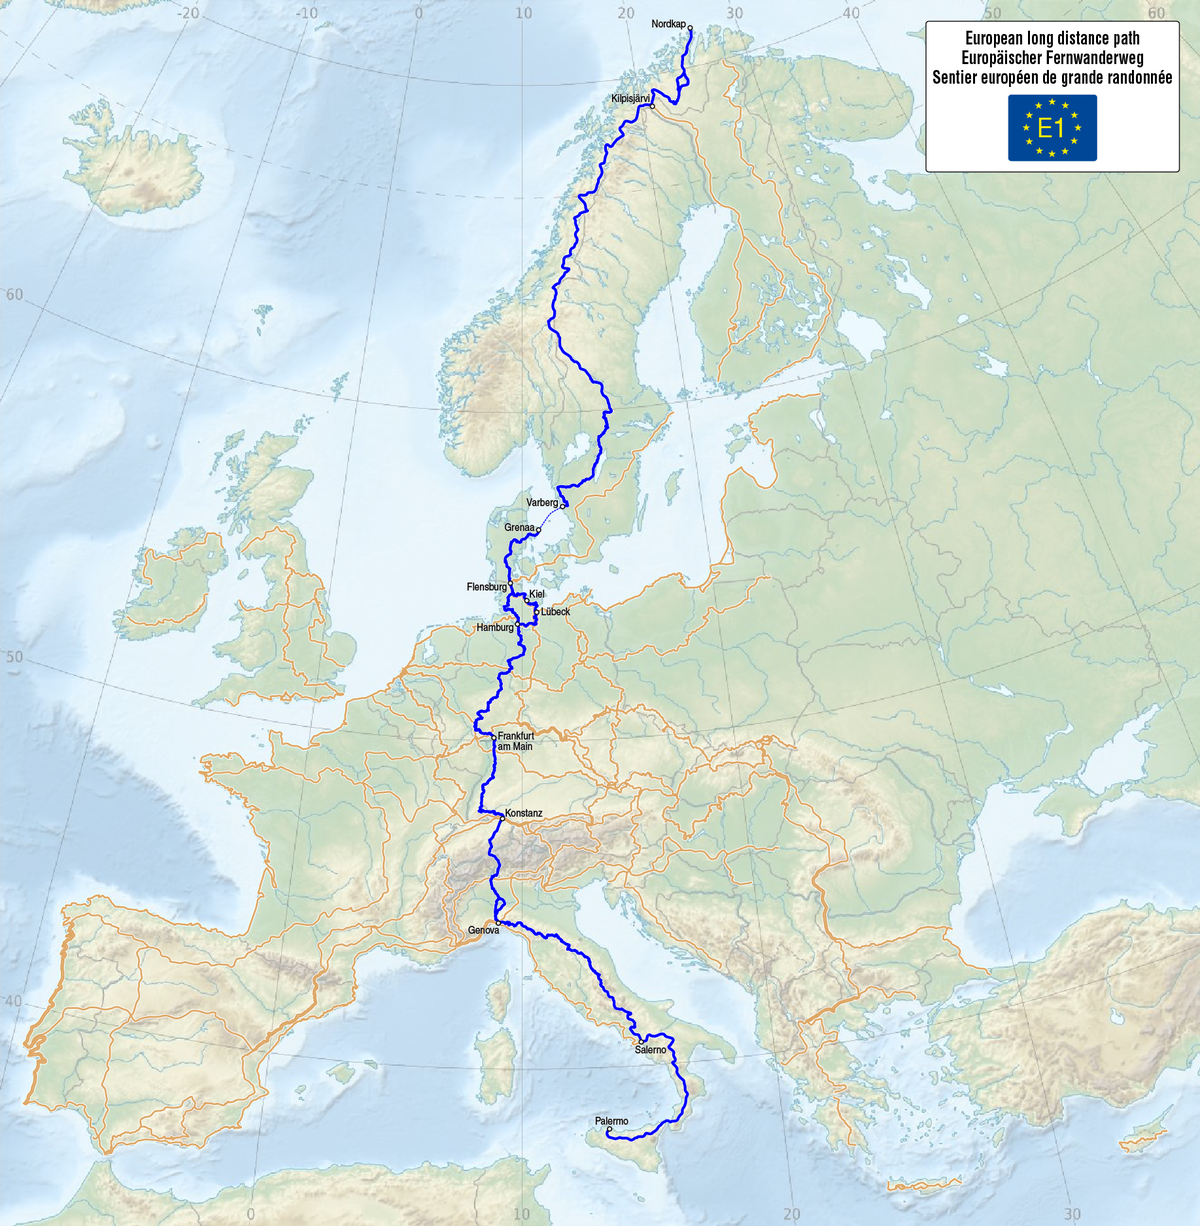 E1 European long distance path - Wikipedia on map of europe galicia, map of europe kiev, map of europe naples, map of europe wittenberg, map of europe germany, map of europe ireland, map of europe helsinki, map of europe athens, map of europe verdun, map of europe malta, map of europe belgrade, map of europe suez canal, map of europe heidelberg, map of europe alsace, map of europe reykjavik, map of europe york, map of europe silesia, map of europe luxembourg, map of europe zagreb, map of europe genoa,